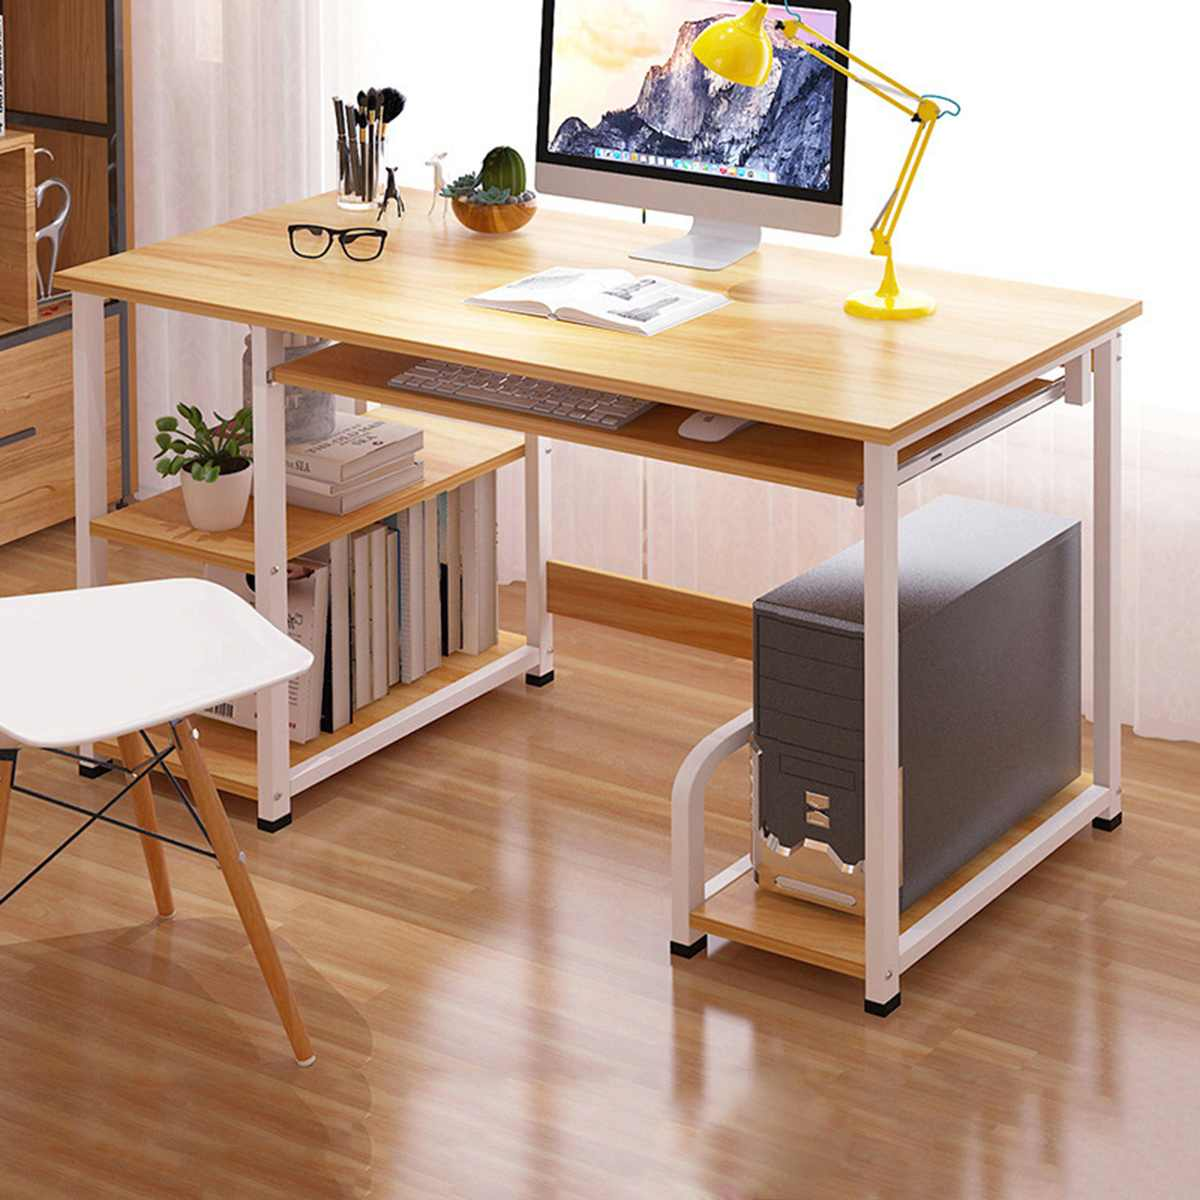 Large size Desktop Notebook Office Bed Tray Escritorio Lap Laptop Stand Bedside Desk Computer Study Table with Storage Organizer